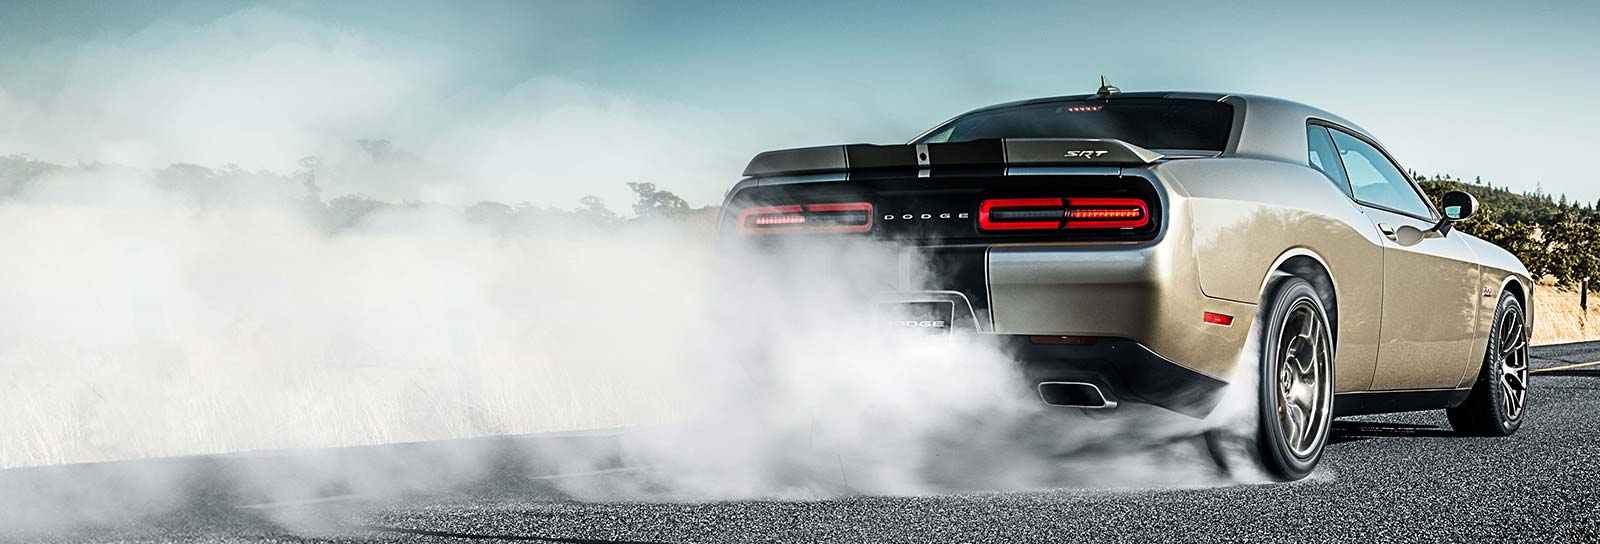 2016-dodge-challenger-vlp-performance-horsepower-torque